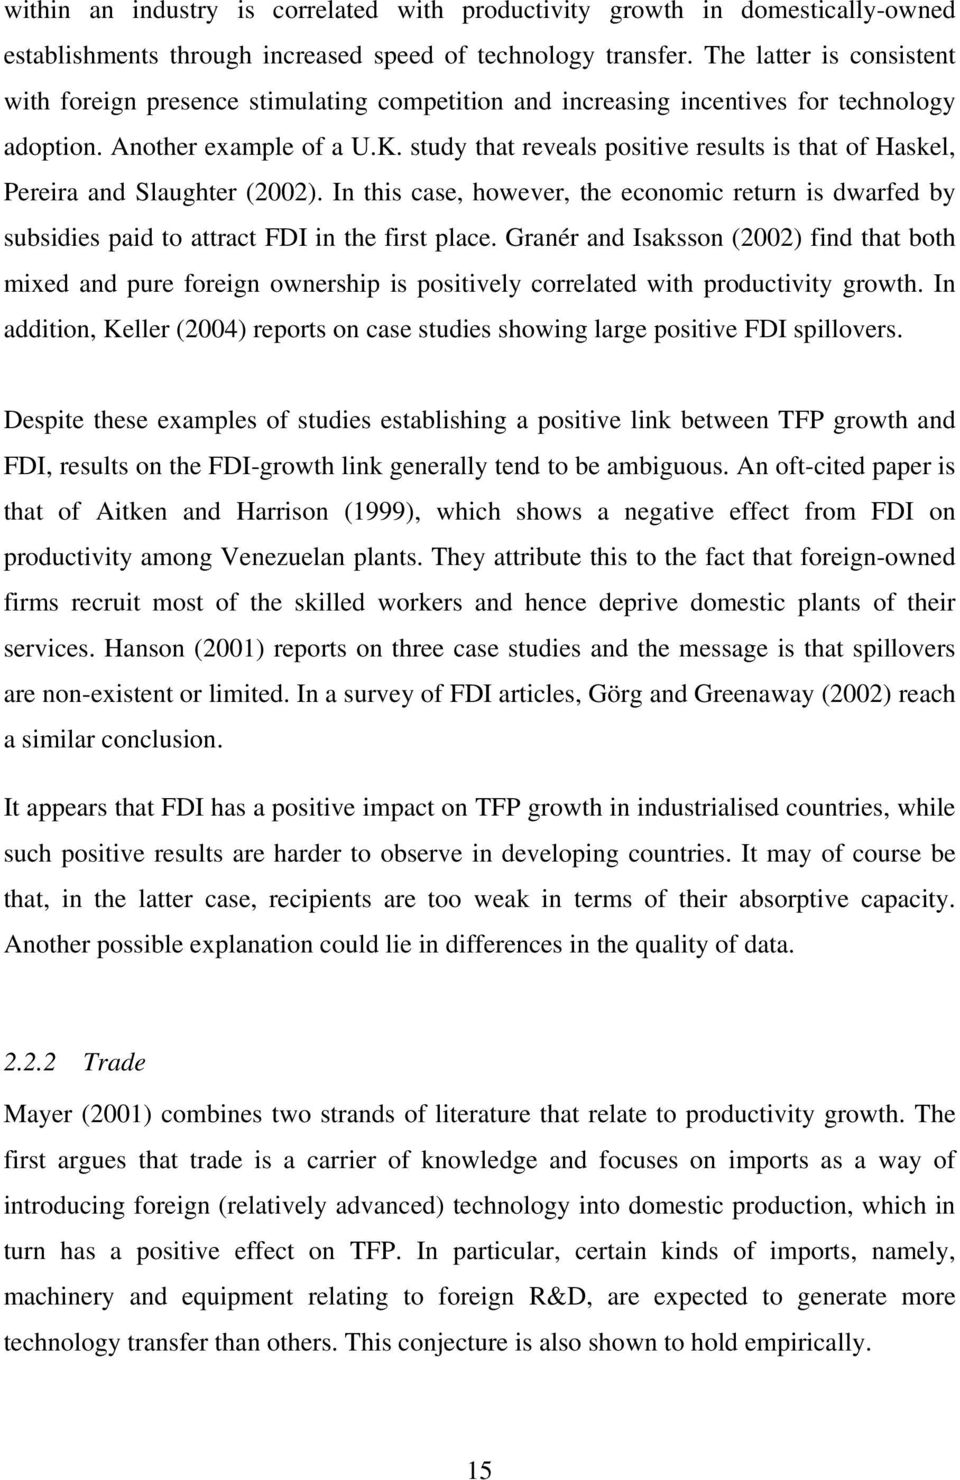 study that reveals positive results is that of Haskel, Pereira and Slaughter (2002). In this case, however, the economic return is dwarfed by subsidies paid to attract FDI in the first place.